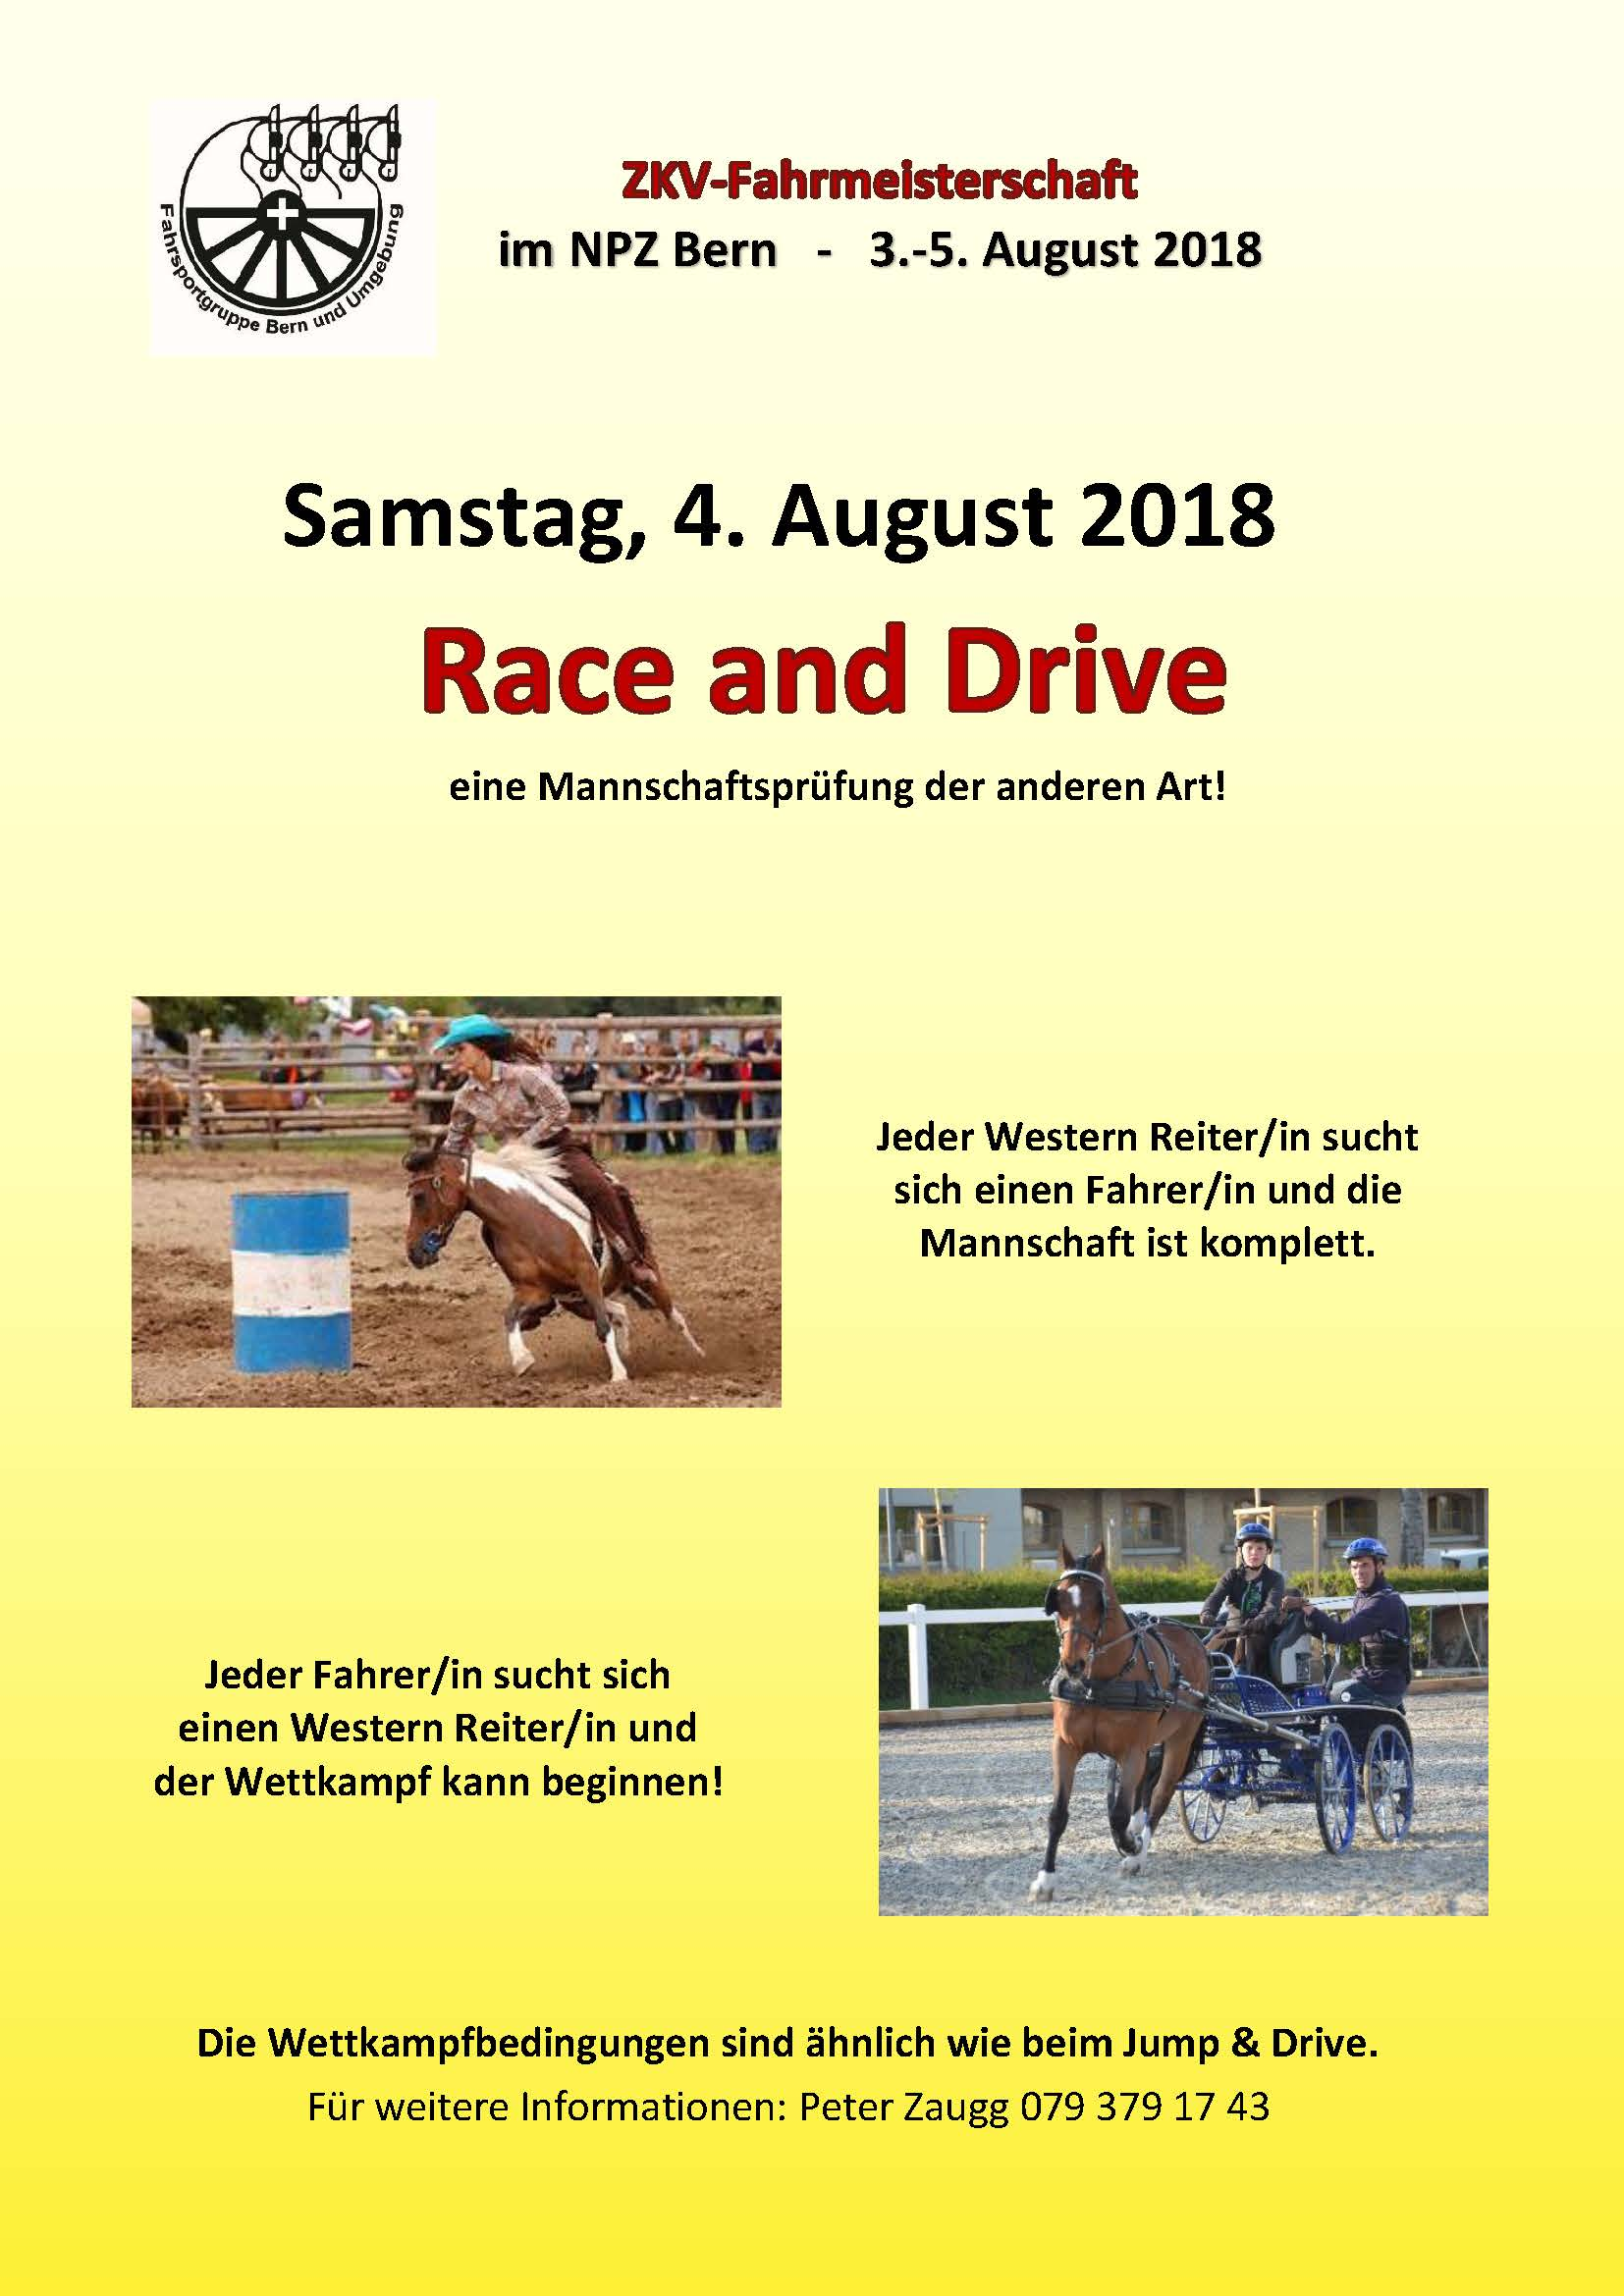 Flyer_A4_ZKV2018_Race and Drivejpg